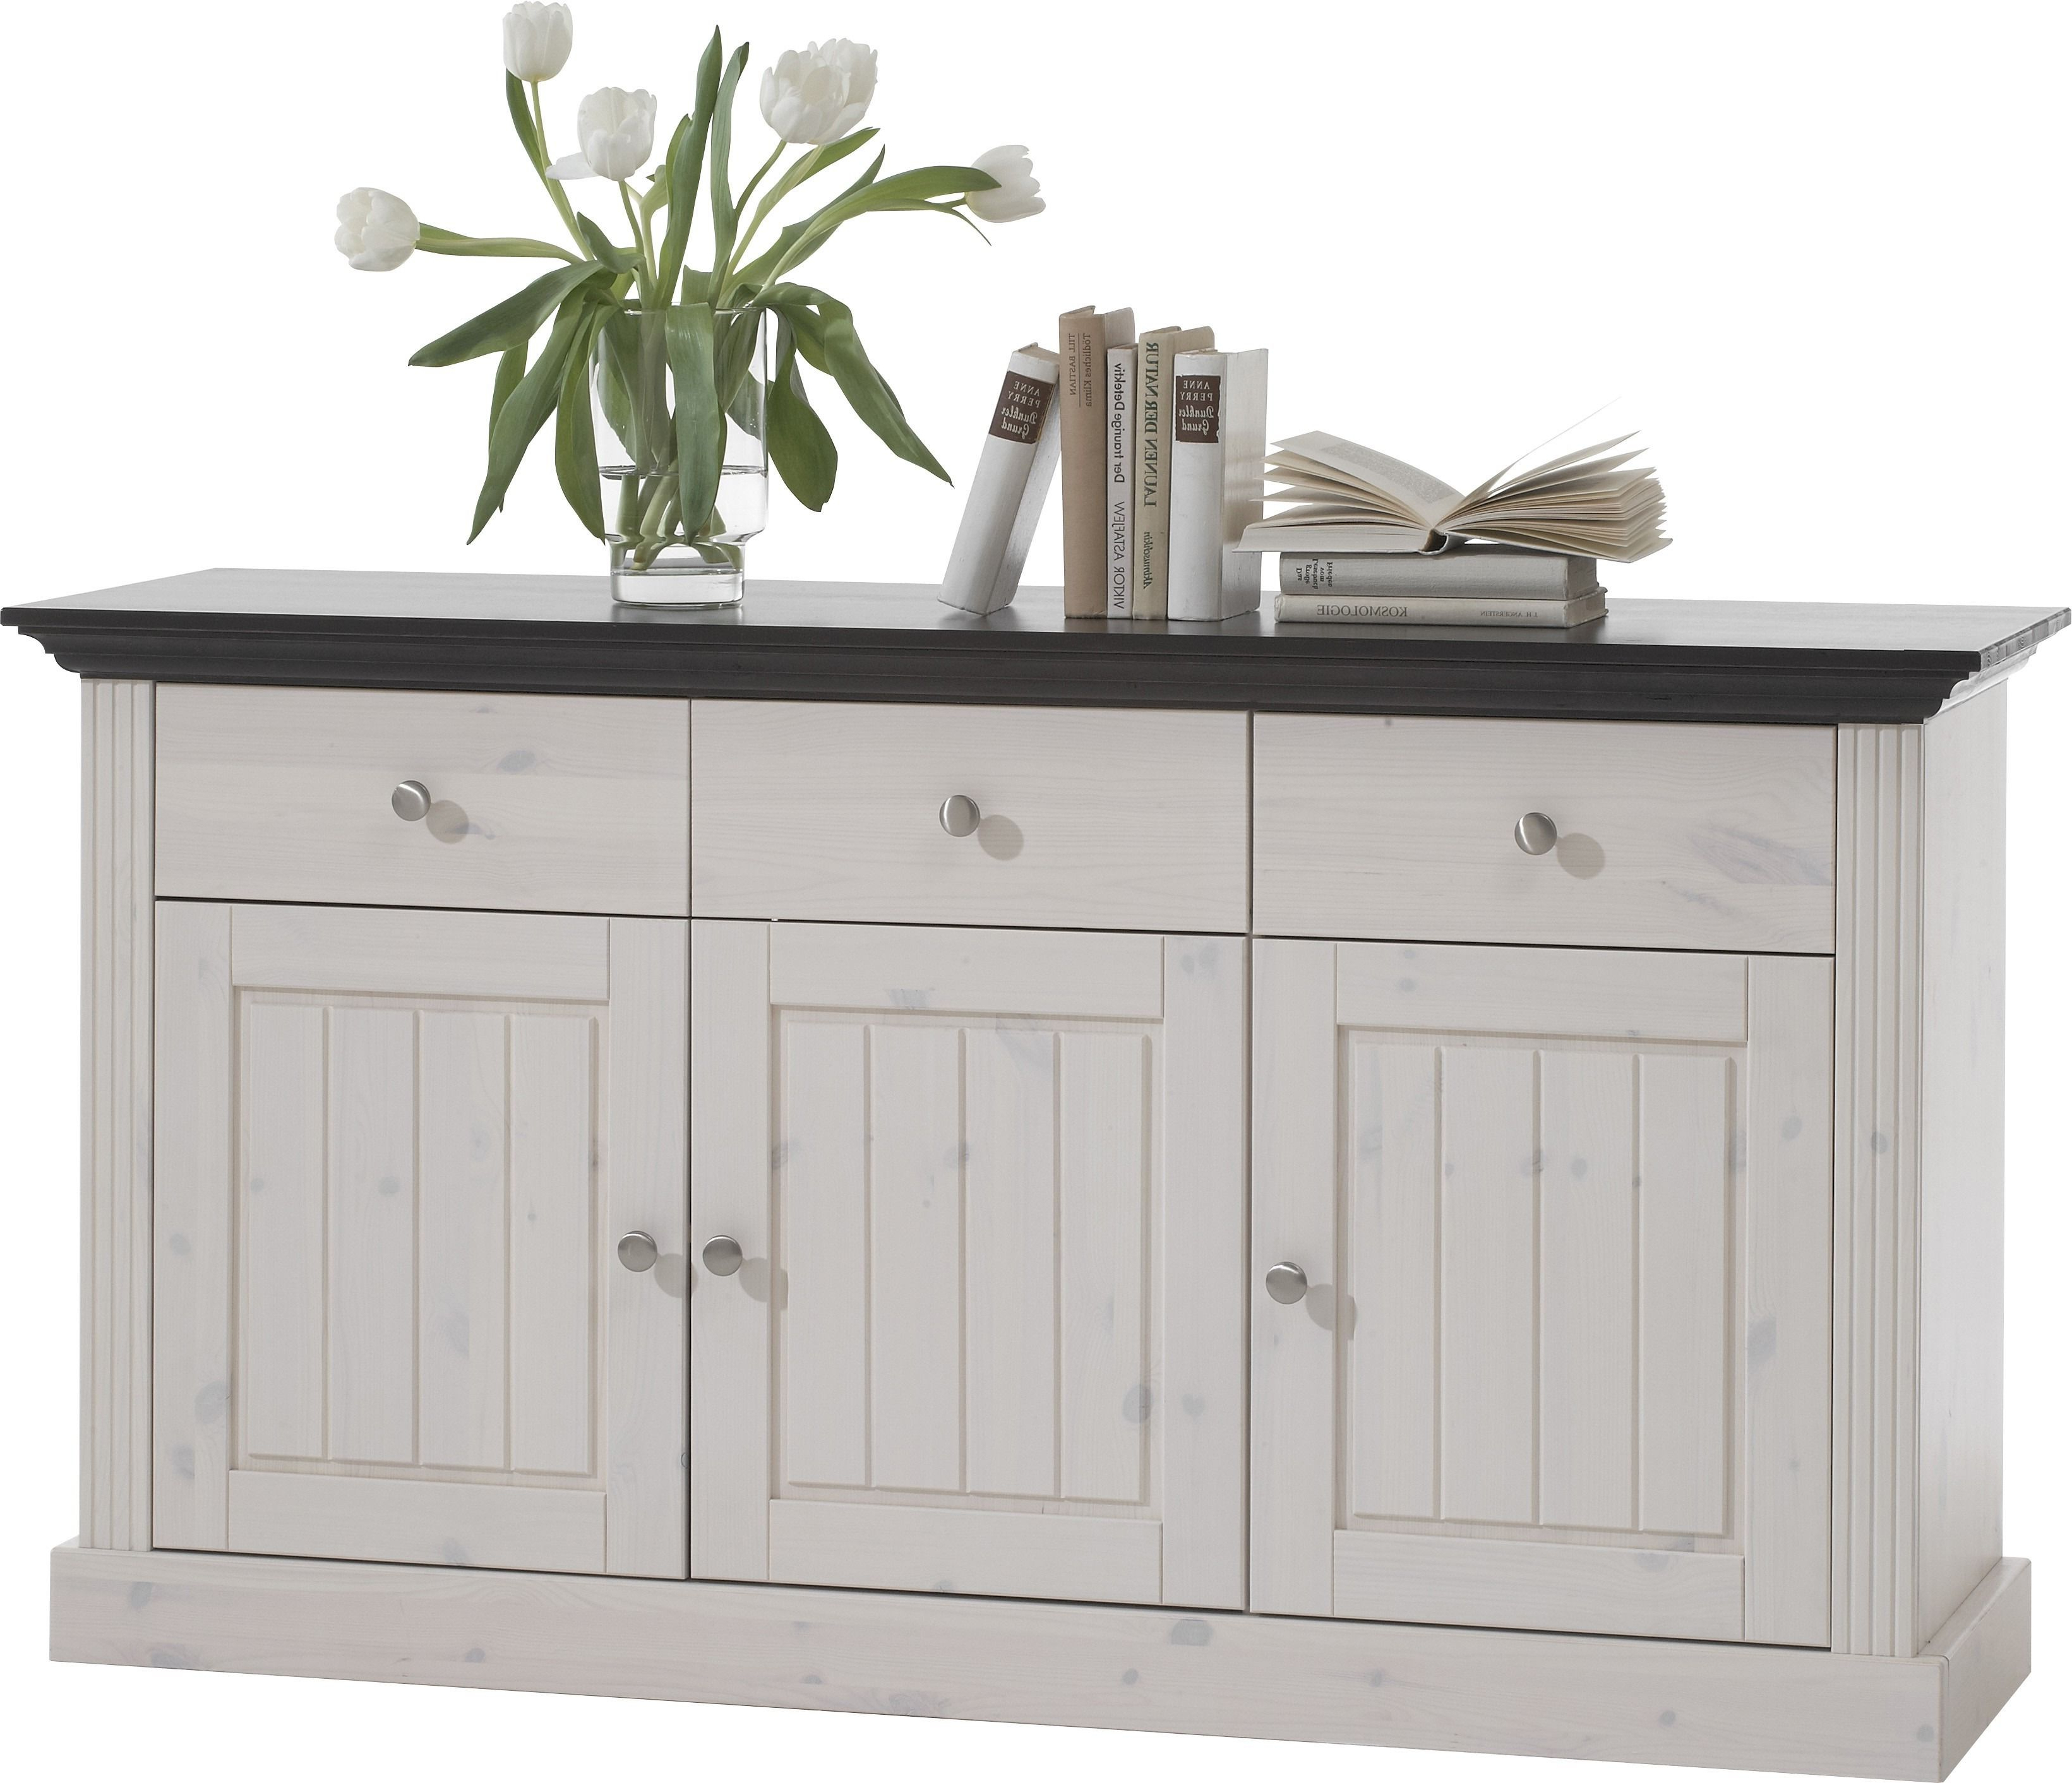 White Wash 3 Door 3 Drawer Sideboards With Regard To Widely Used Steens Monaco 3 Door 3 Drawer Sideboard In Whitewash – The Monaco (View 20 of 20)